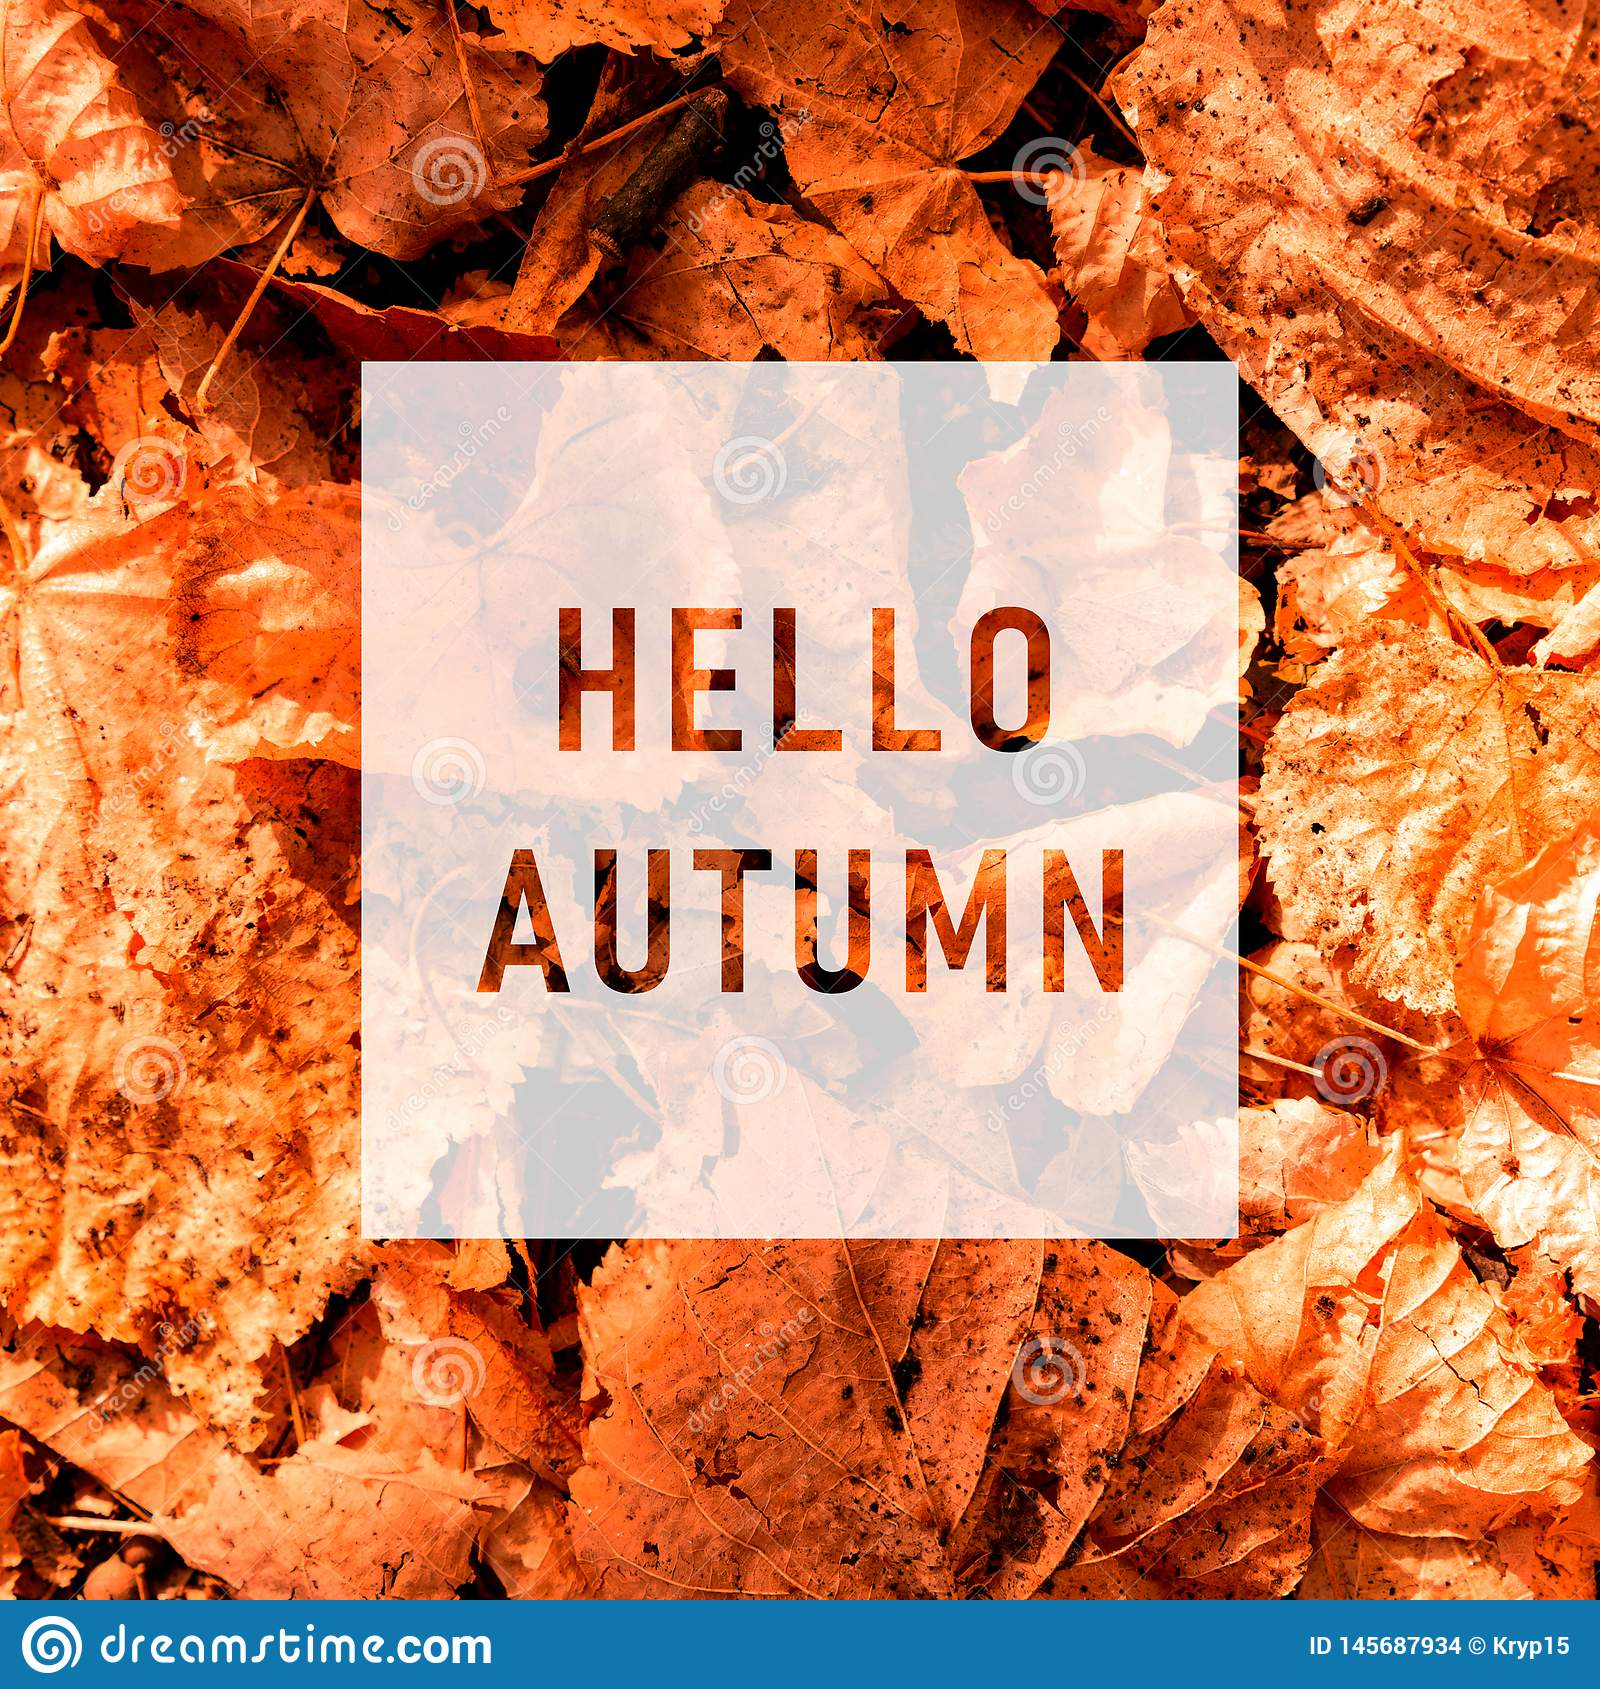 Hello autumn, greeting text on colorful